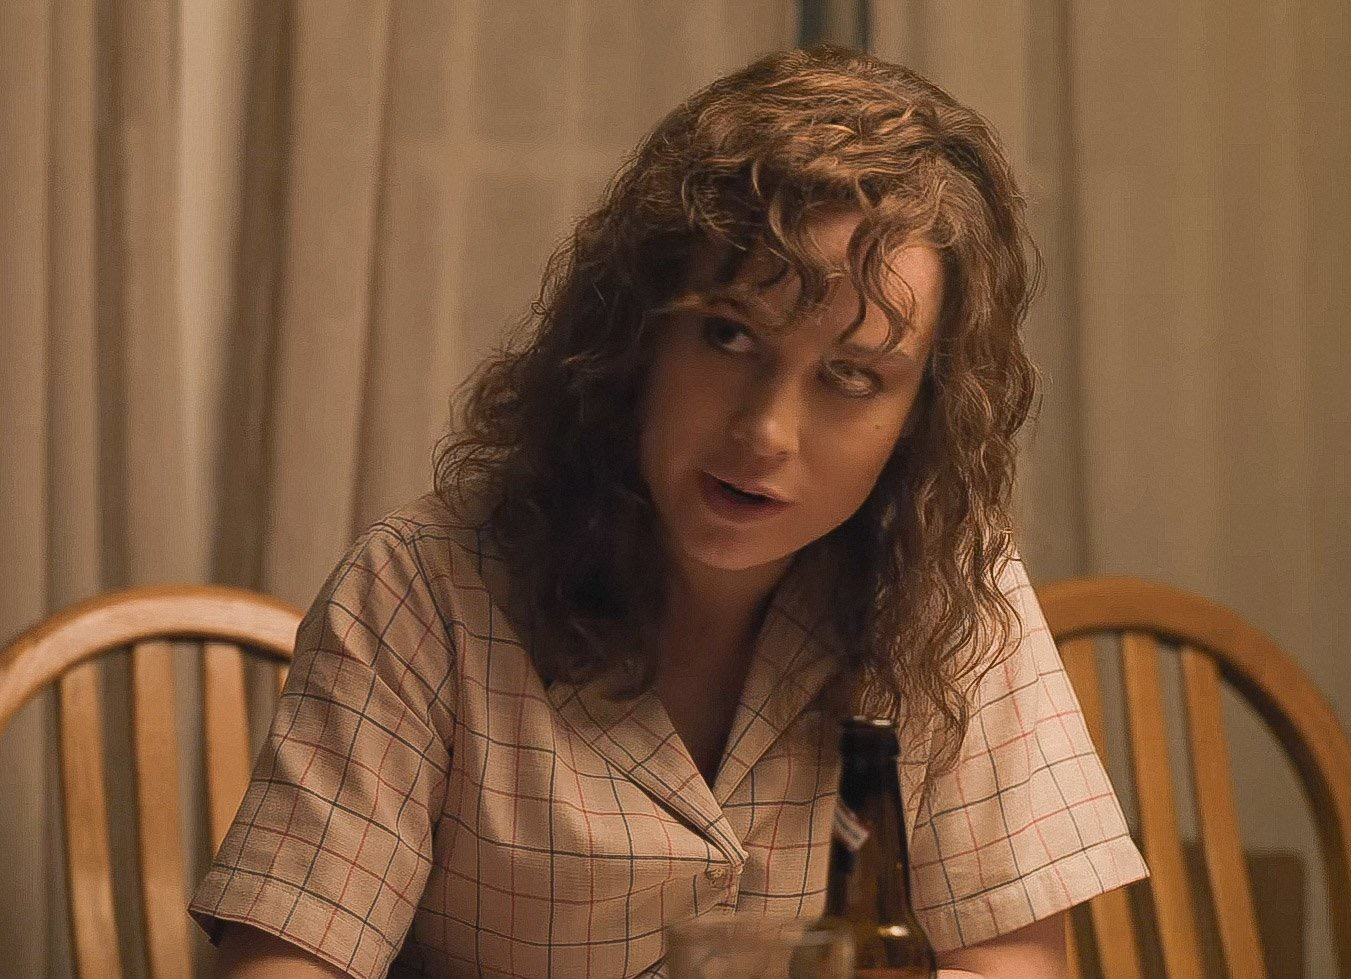 Brie Larson in Just Mercy (2019)